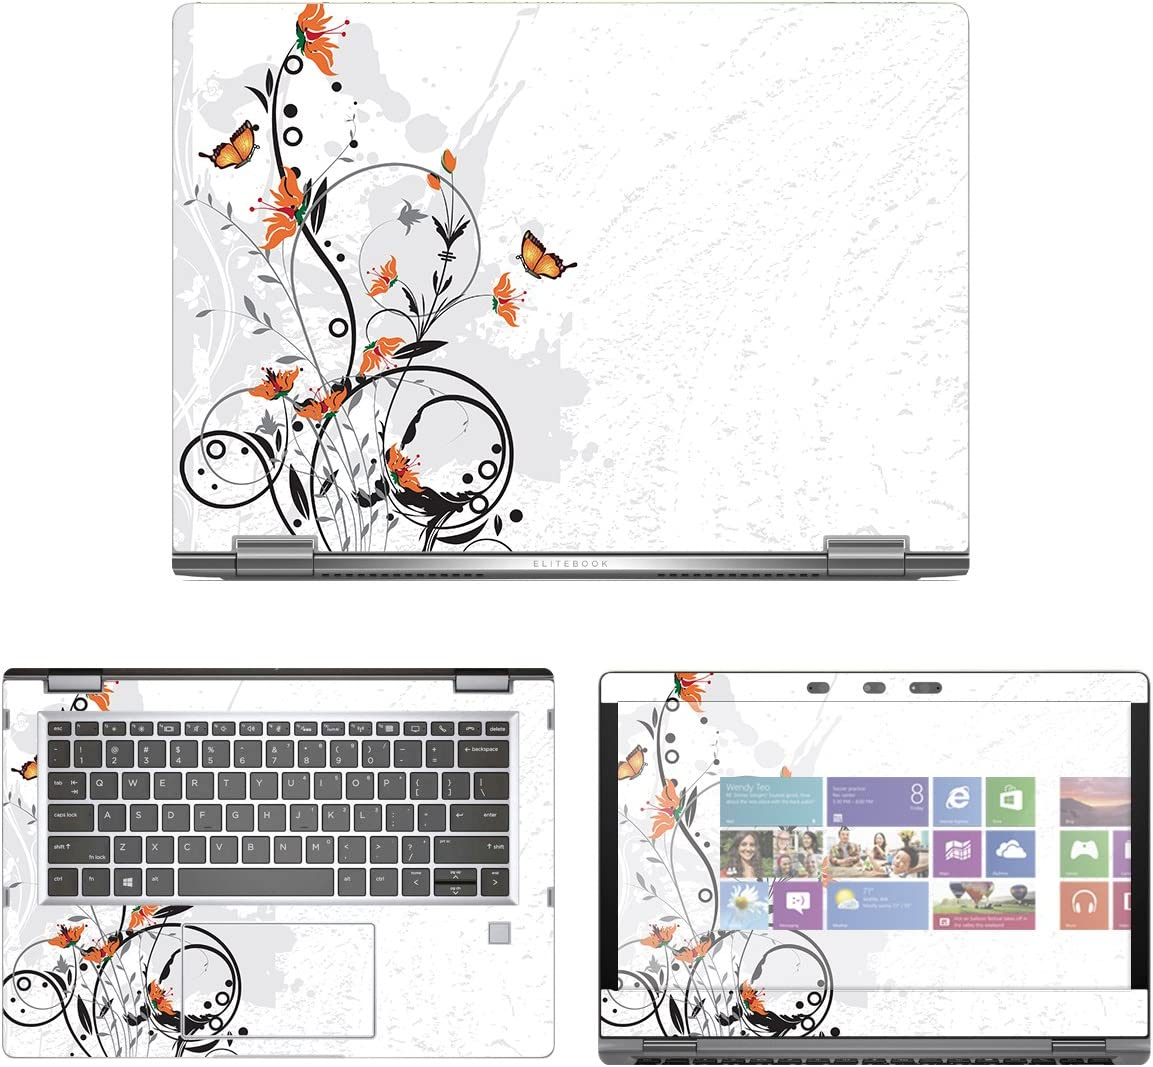 "decalrus - Protective Decal Skin Sticker for HP EliteBook X360 1030 G2 (13.3"" Screen) case Cover wrap HPelitebk1030g2-184"